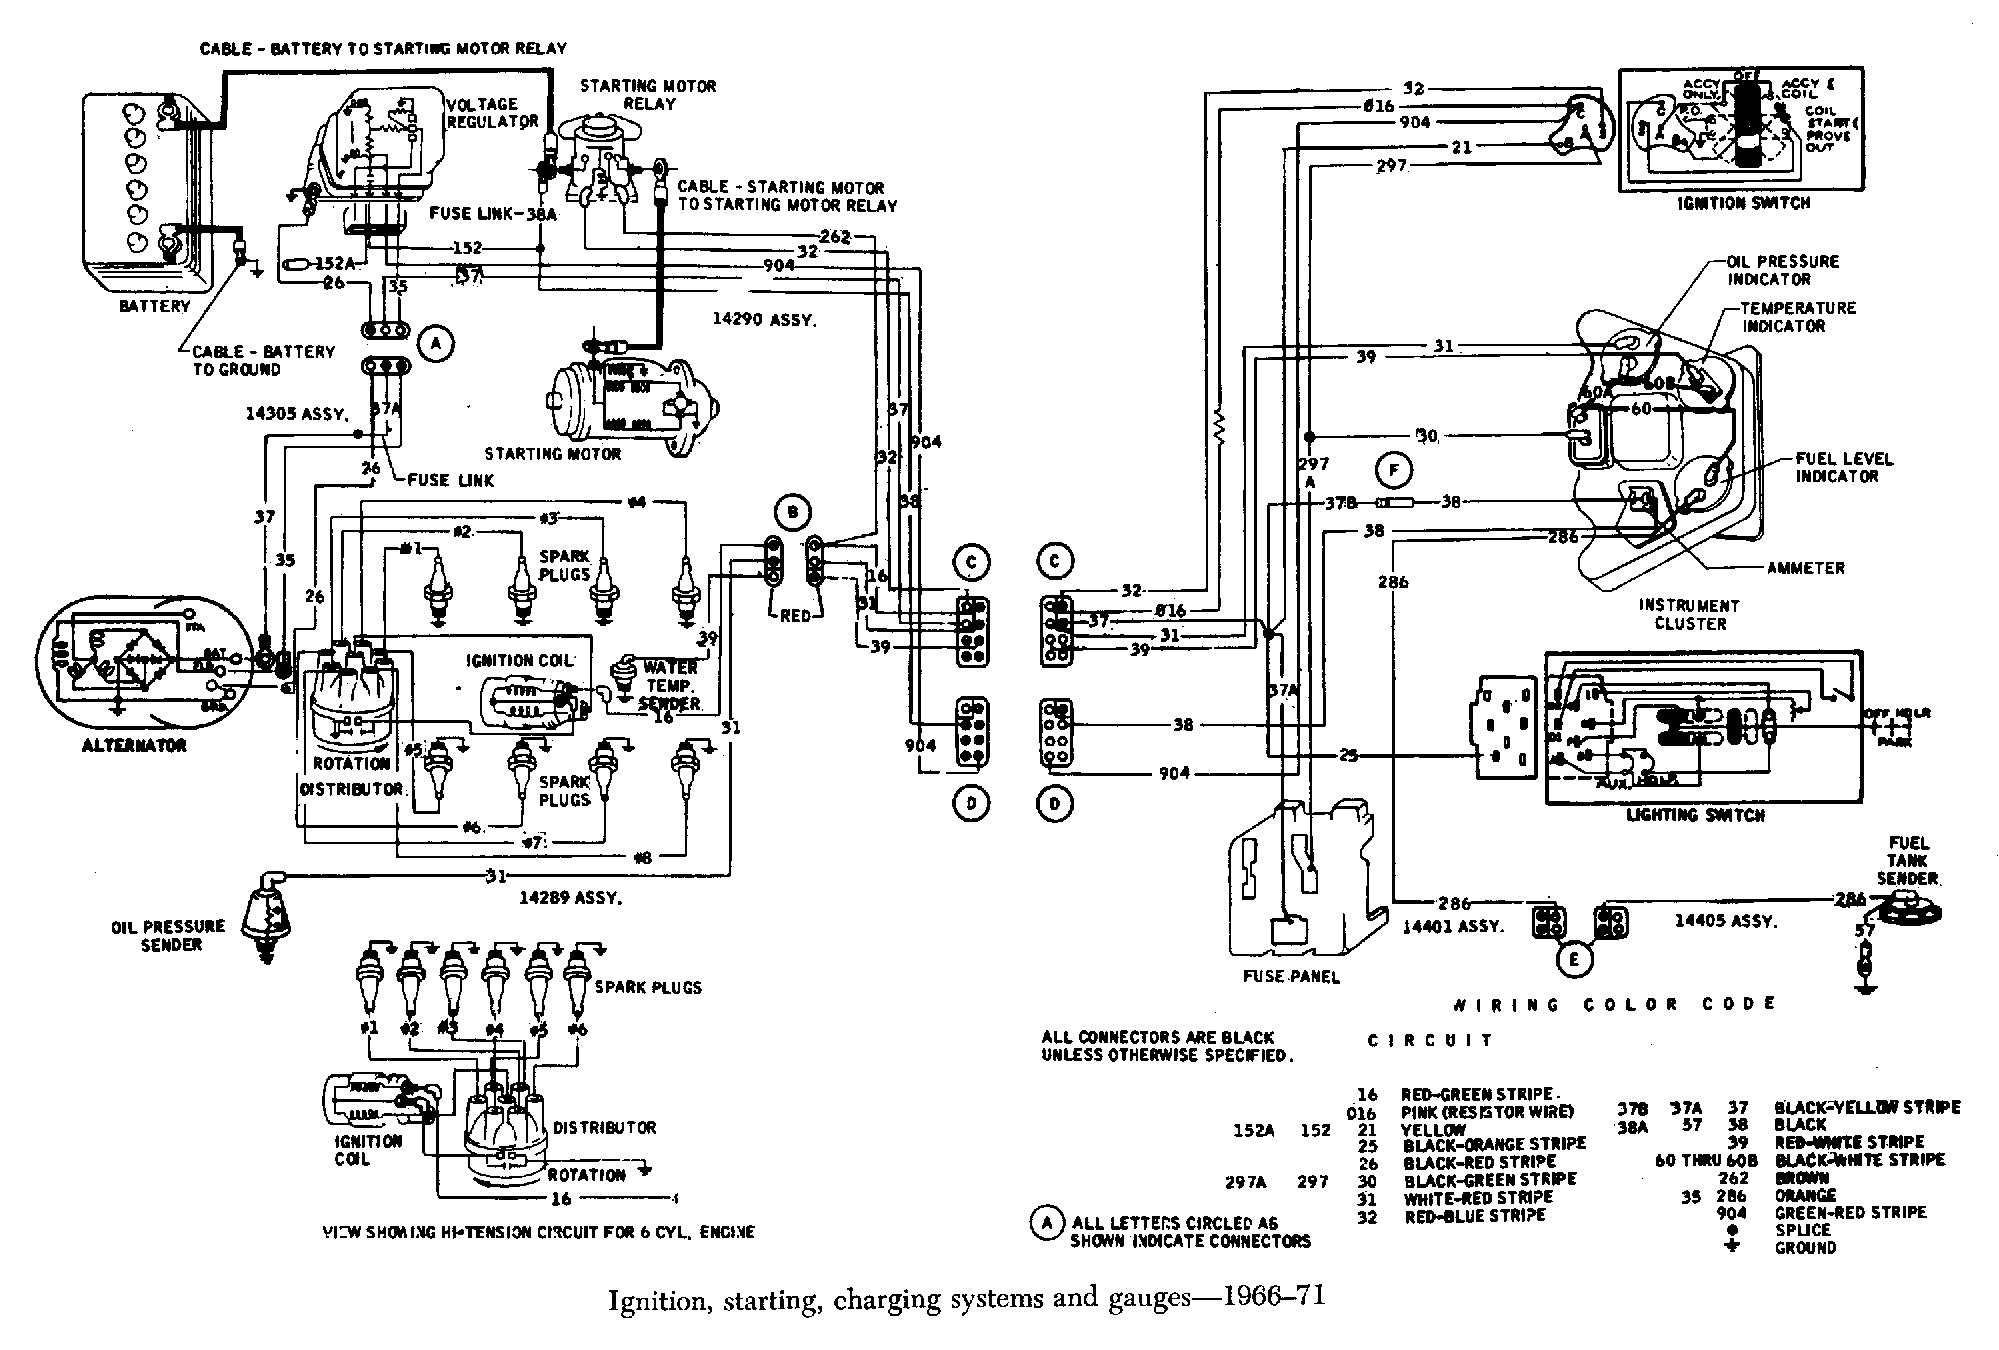 images?q=tbn:ANd9GcQh_l3eQ5xwiPy07kGEXjmjgmBKBRB7H2mRxCGhv1tFWg5c_mWT Chevy 350 Tbi Engine Diagram Parts